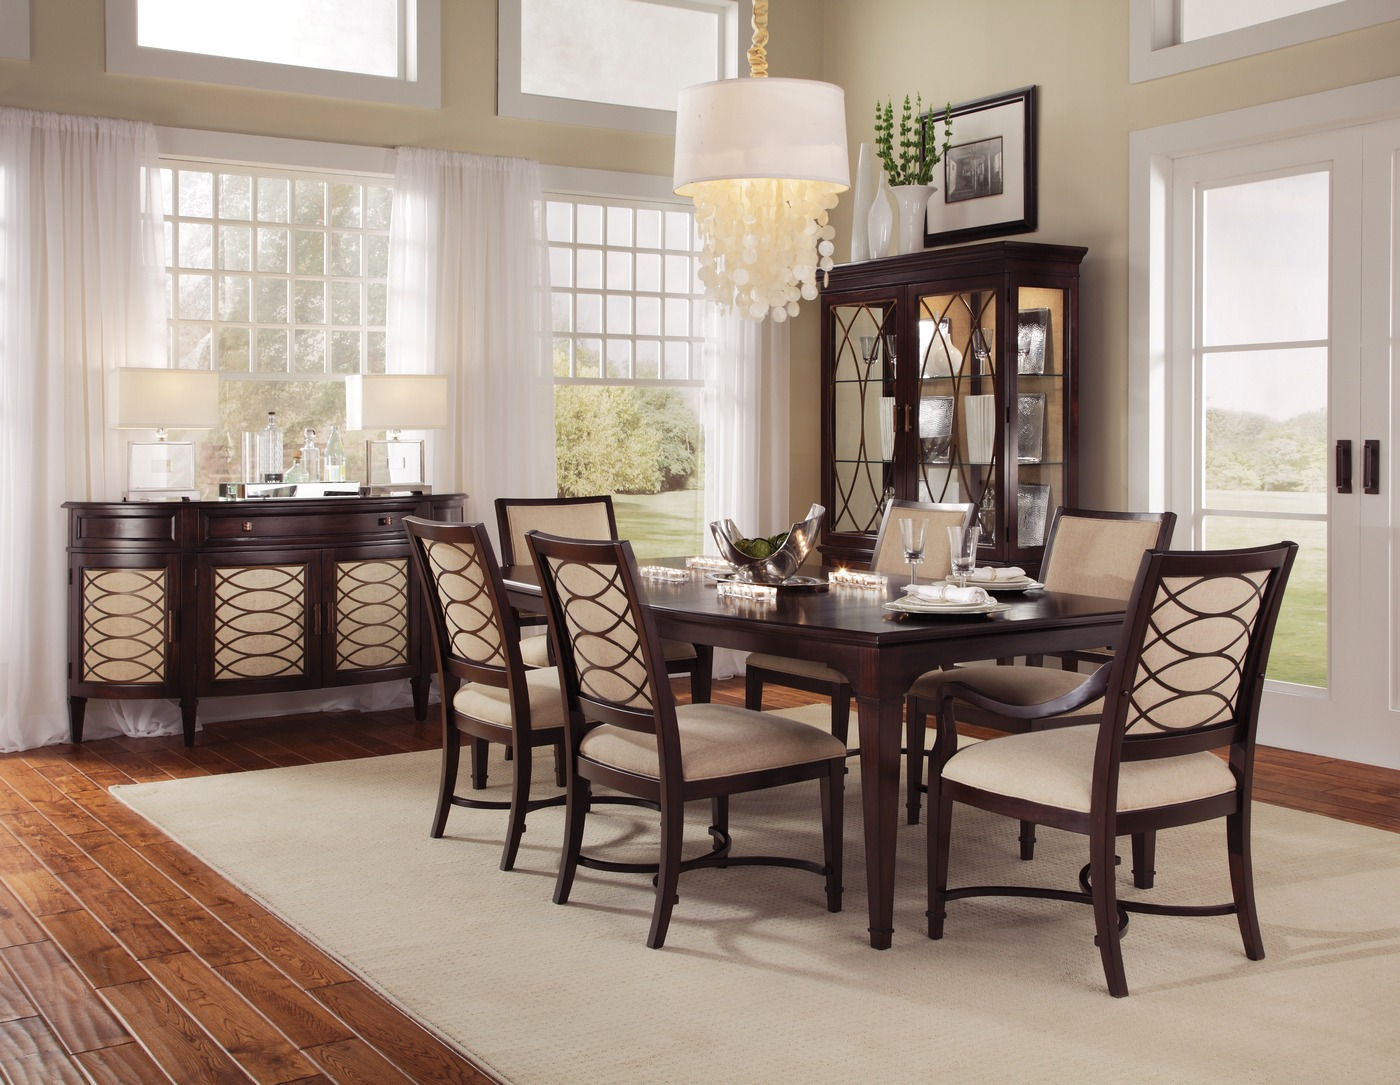 pics of dining room furniture | Intrigue Transitional Contemporary Dark Wood Formal Dining ...